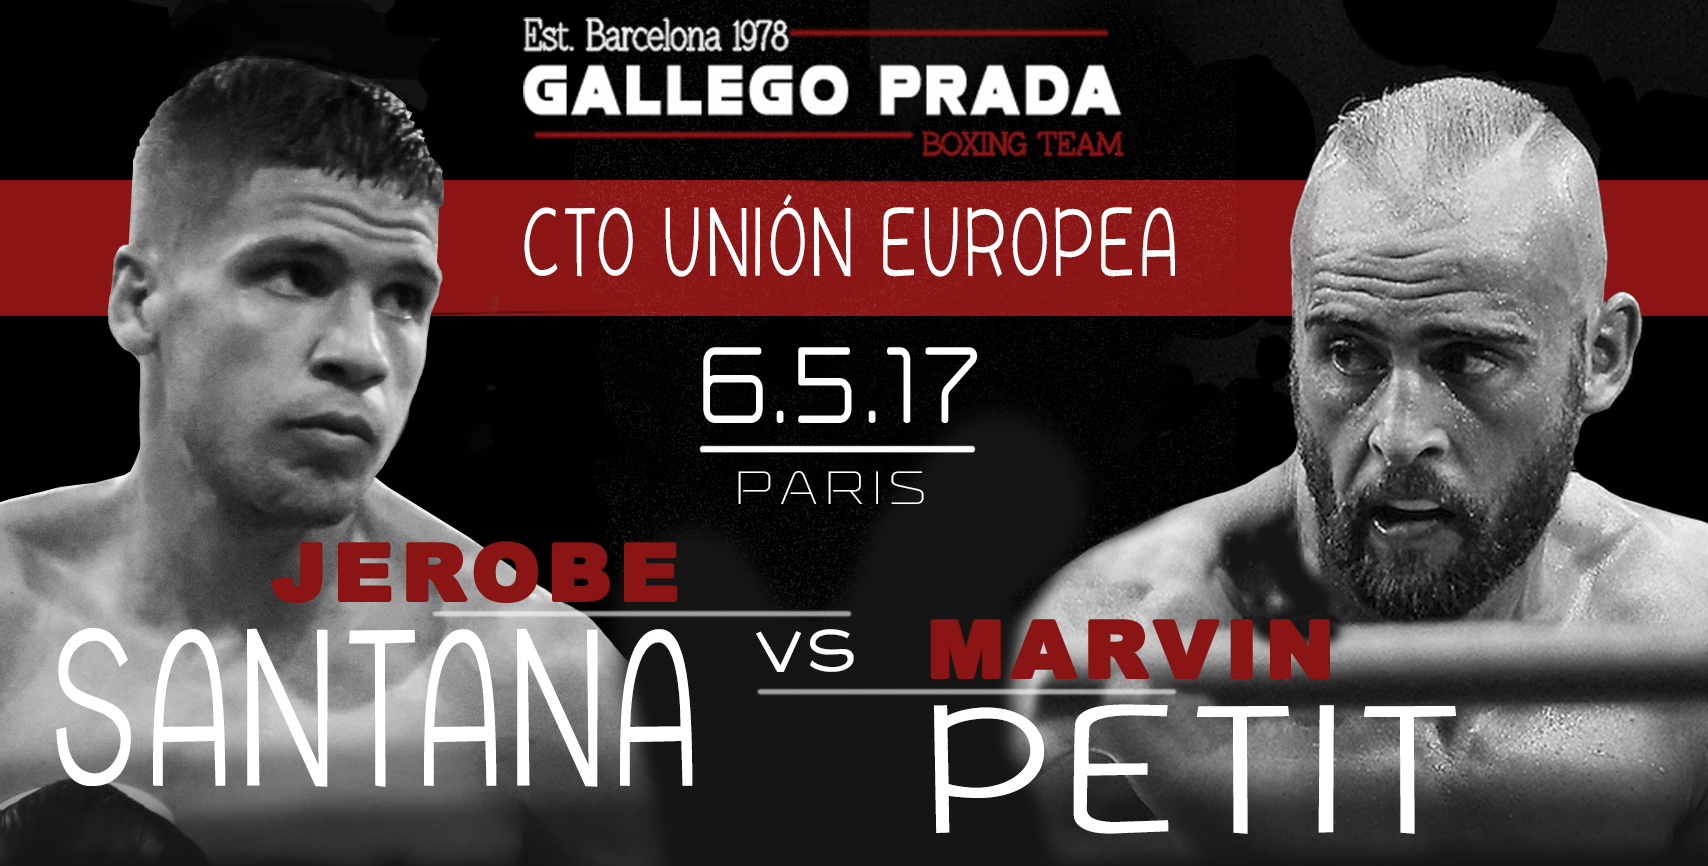 Jerobe Santana - Marvin Petit Union Europea 6.5.2017